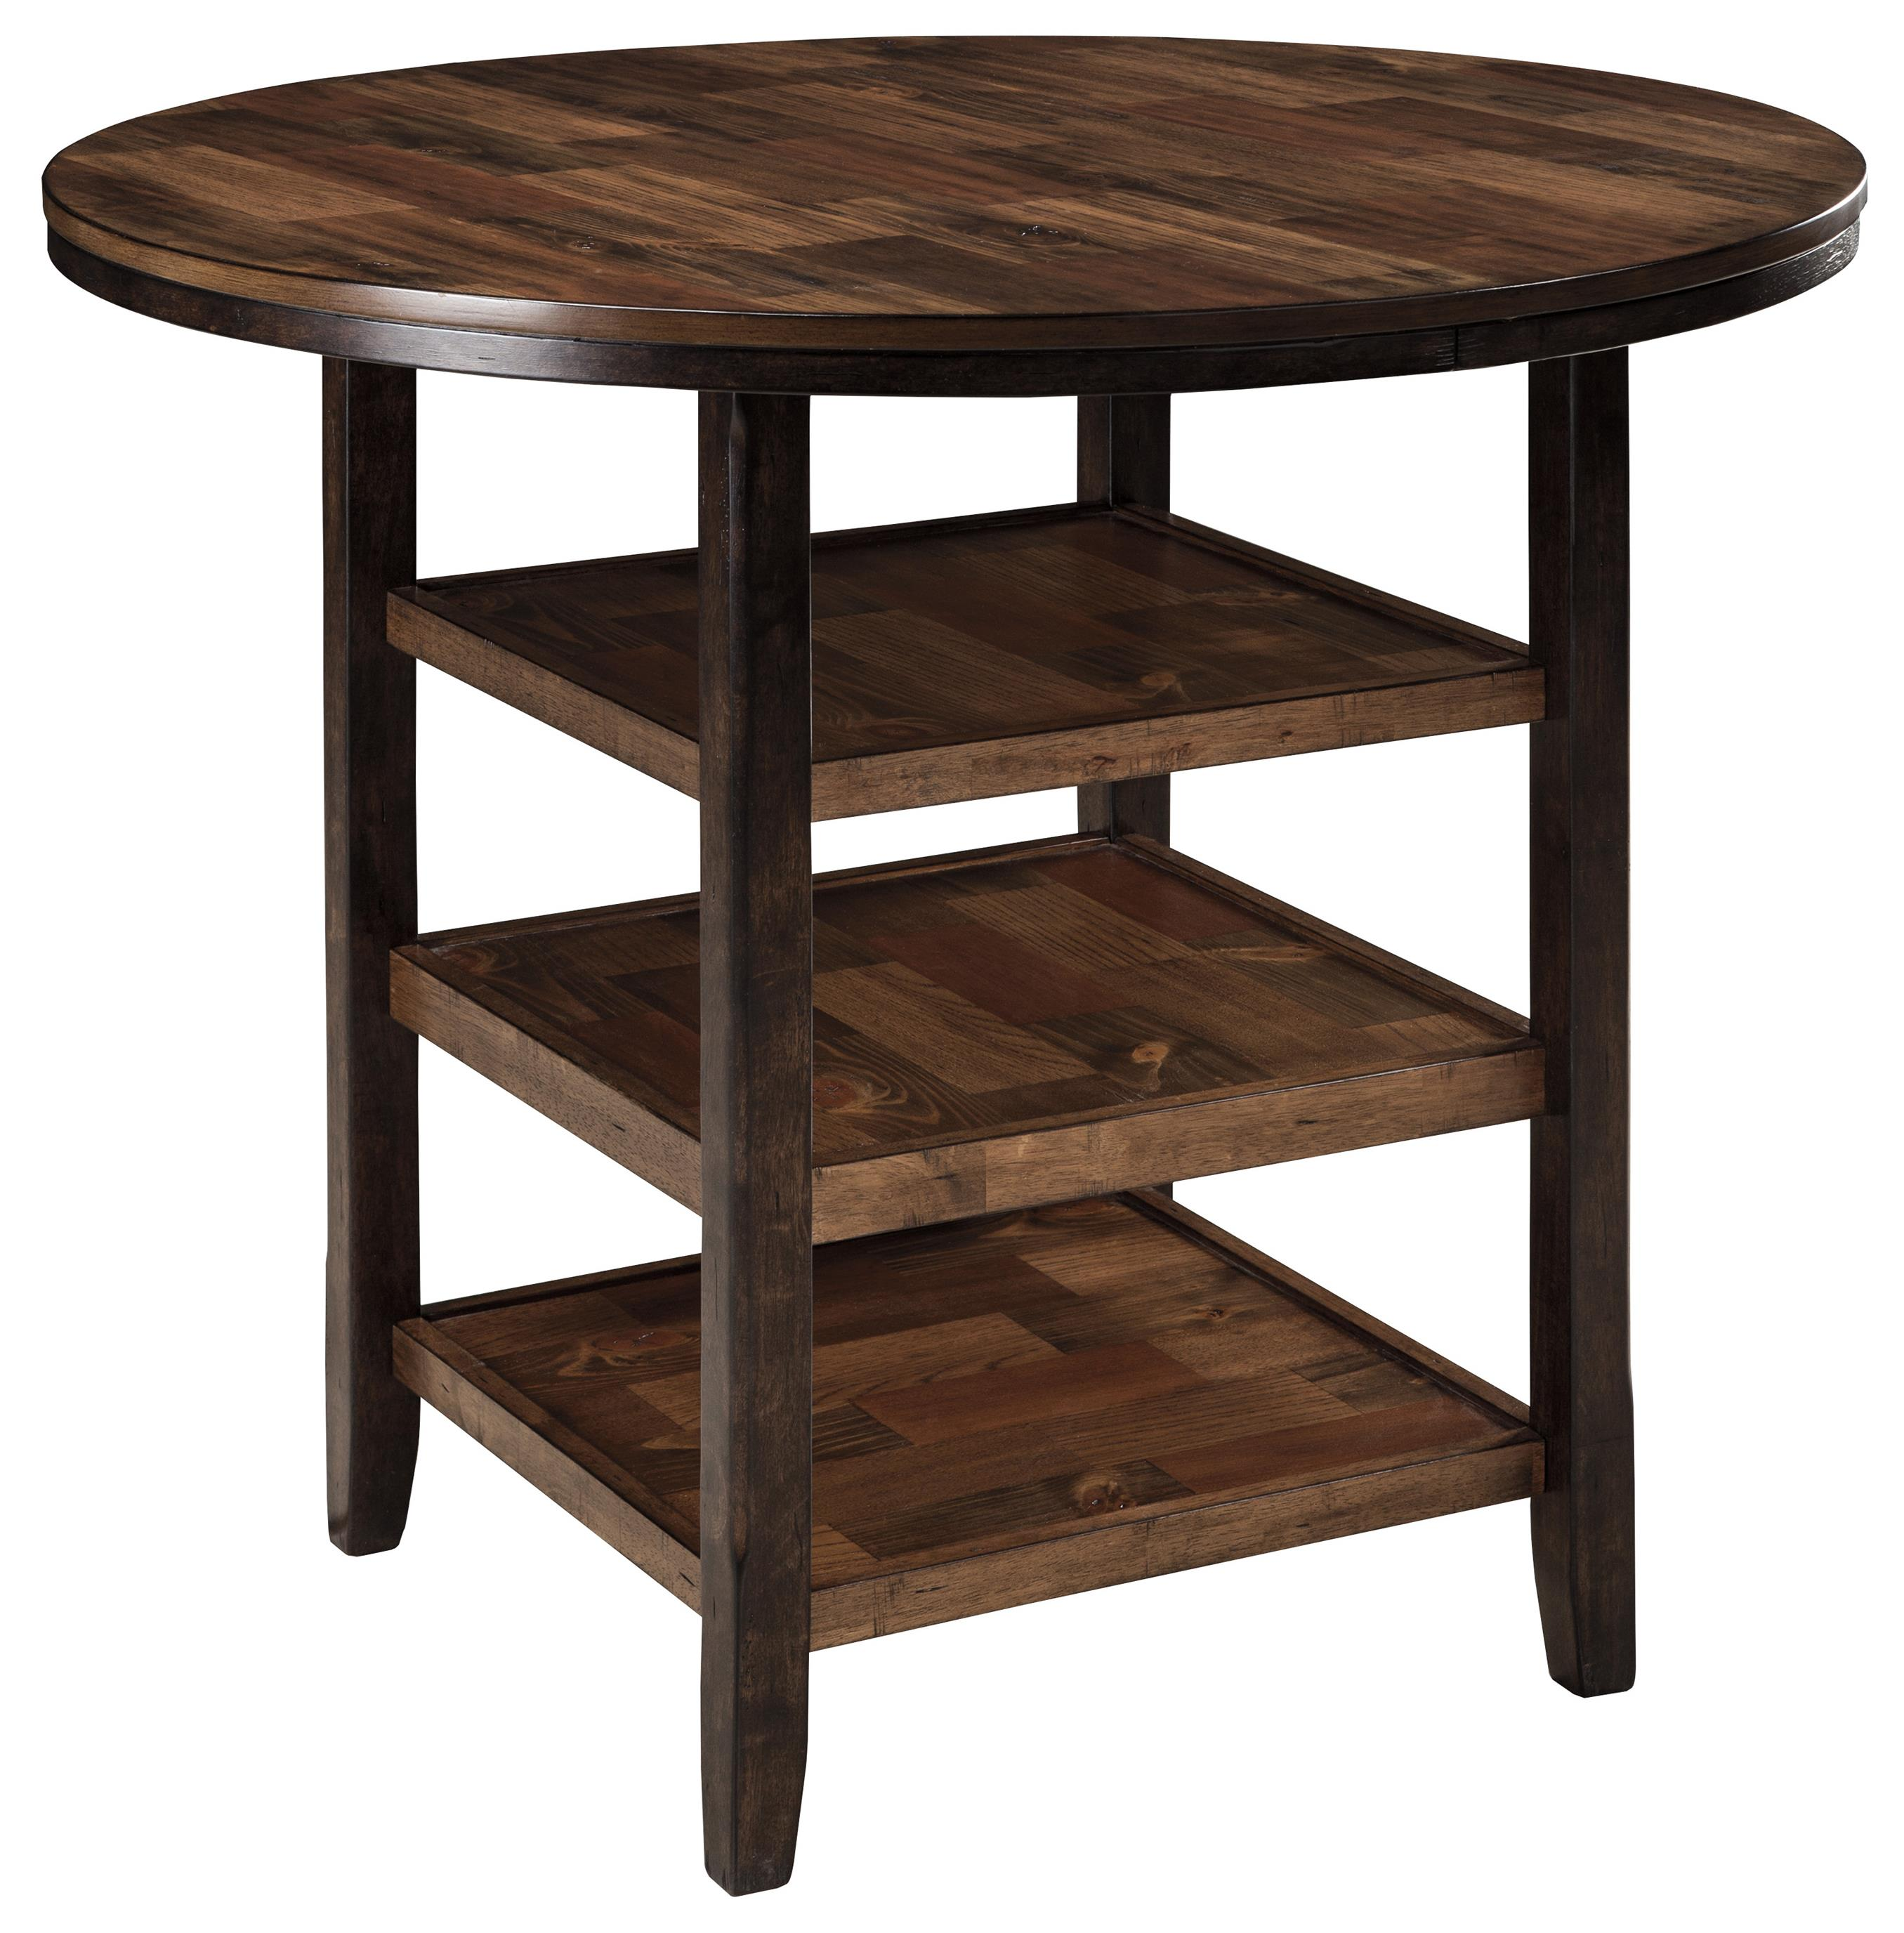 Round Dining Room Counter Table With 3 Shelves U0026 Butcher Block Inlay